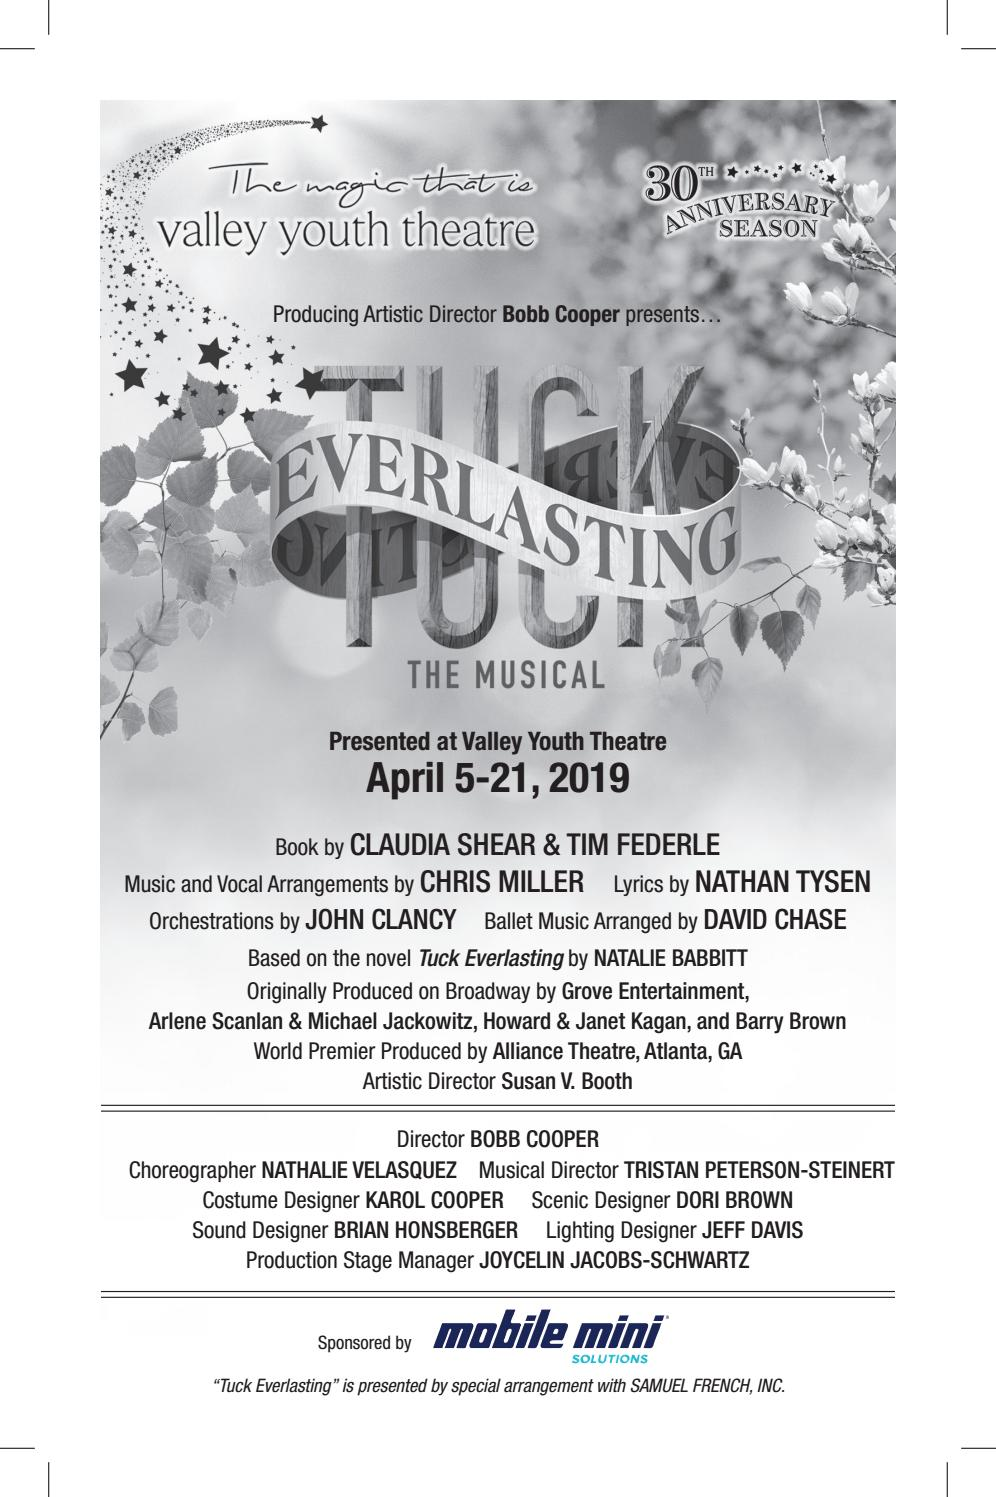 Vyt Tuck Everlasting The Musical